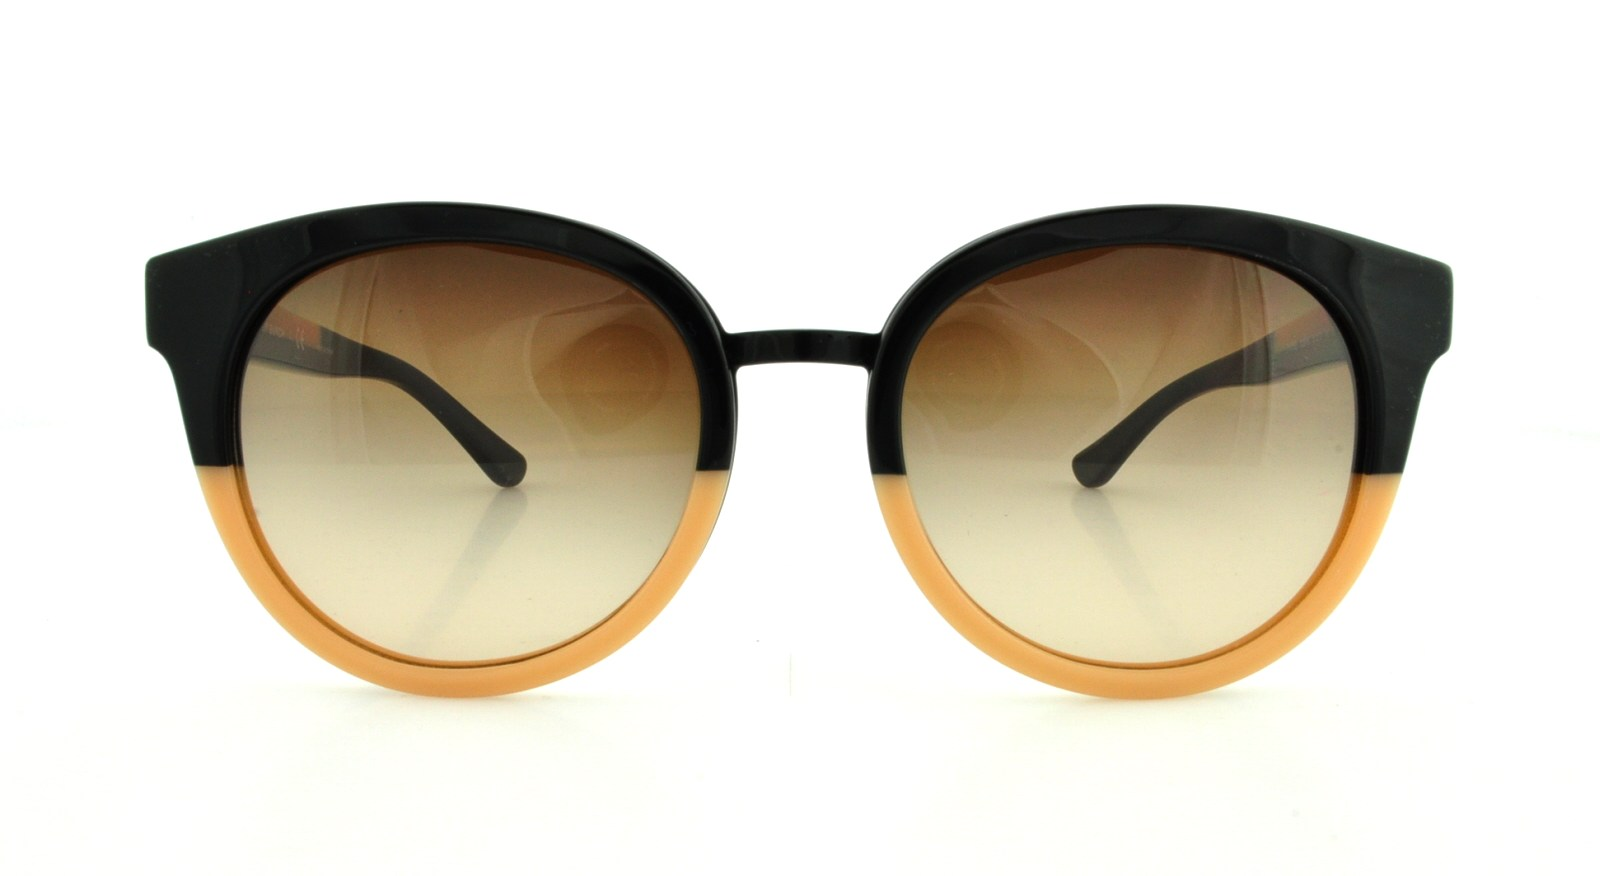 6aa5daf0602 Designer Frames Outlet. Tory Burch TY7062 Panama